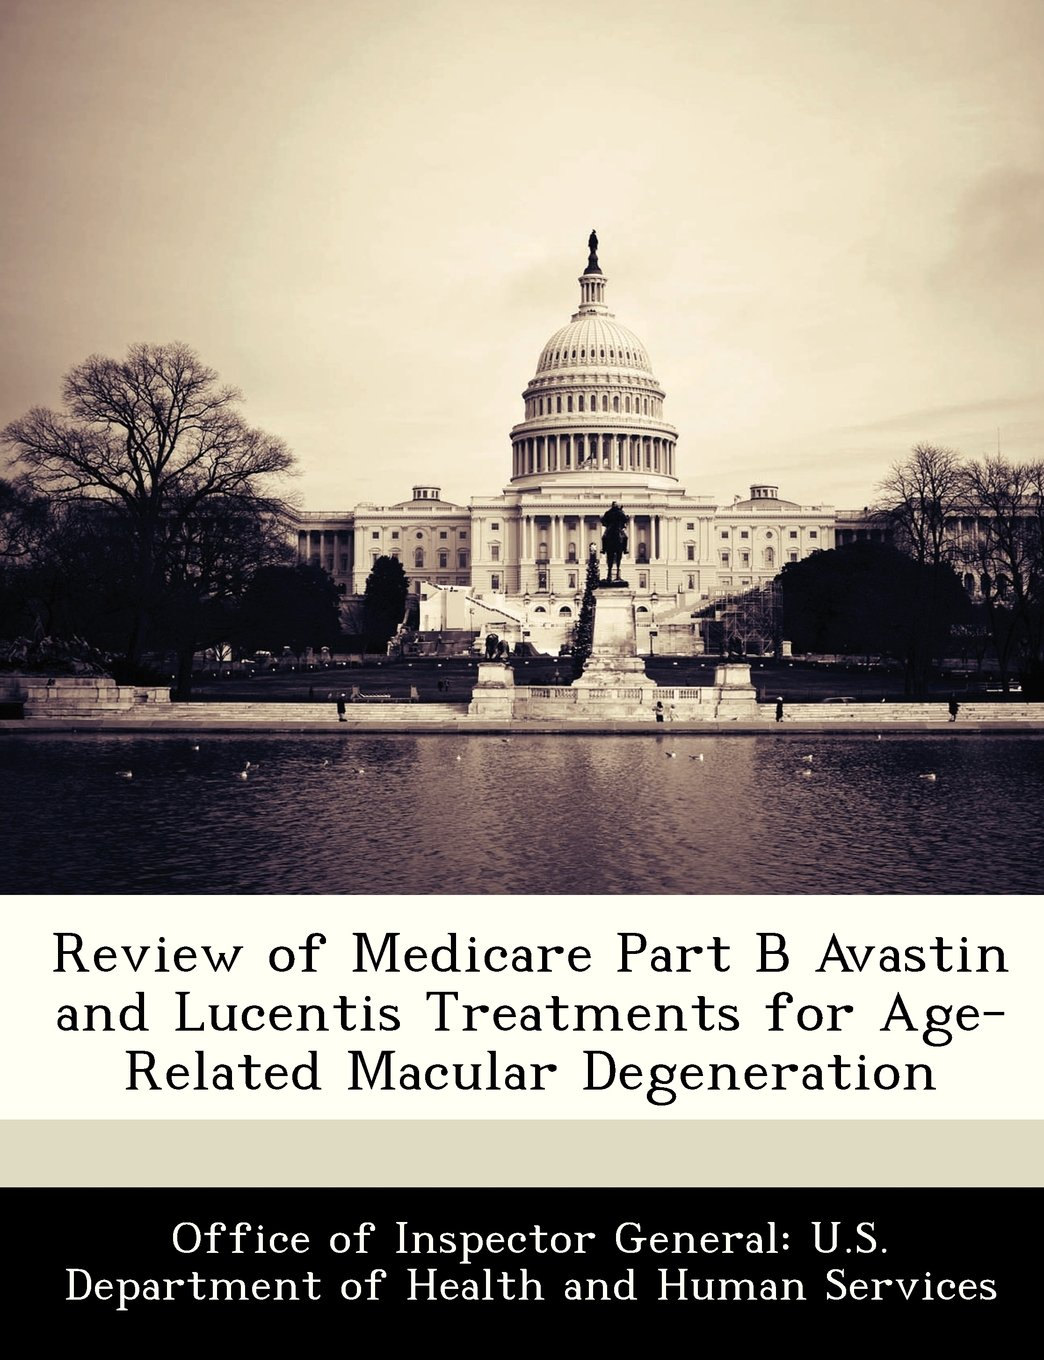 Read Online Review of Medicare Part B Avastin and Lucentis Treatments for Age-Related Macular Degeneration PDF